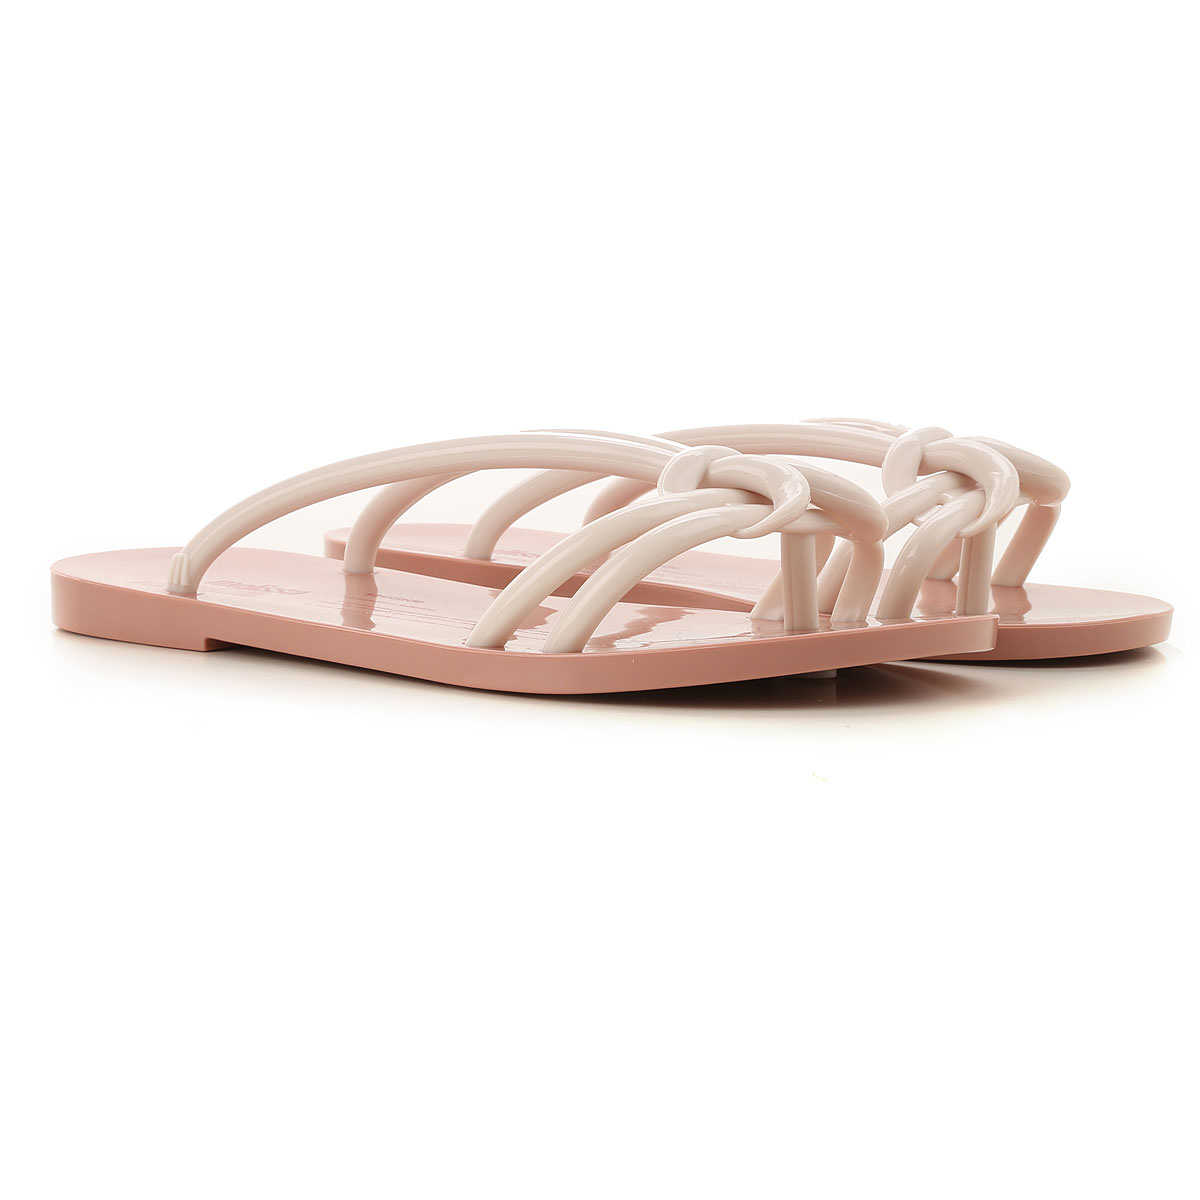 Melissa Sandals for Women On Sale Beige - GOOFASH